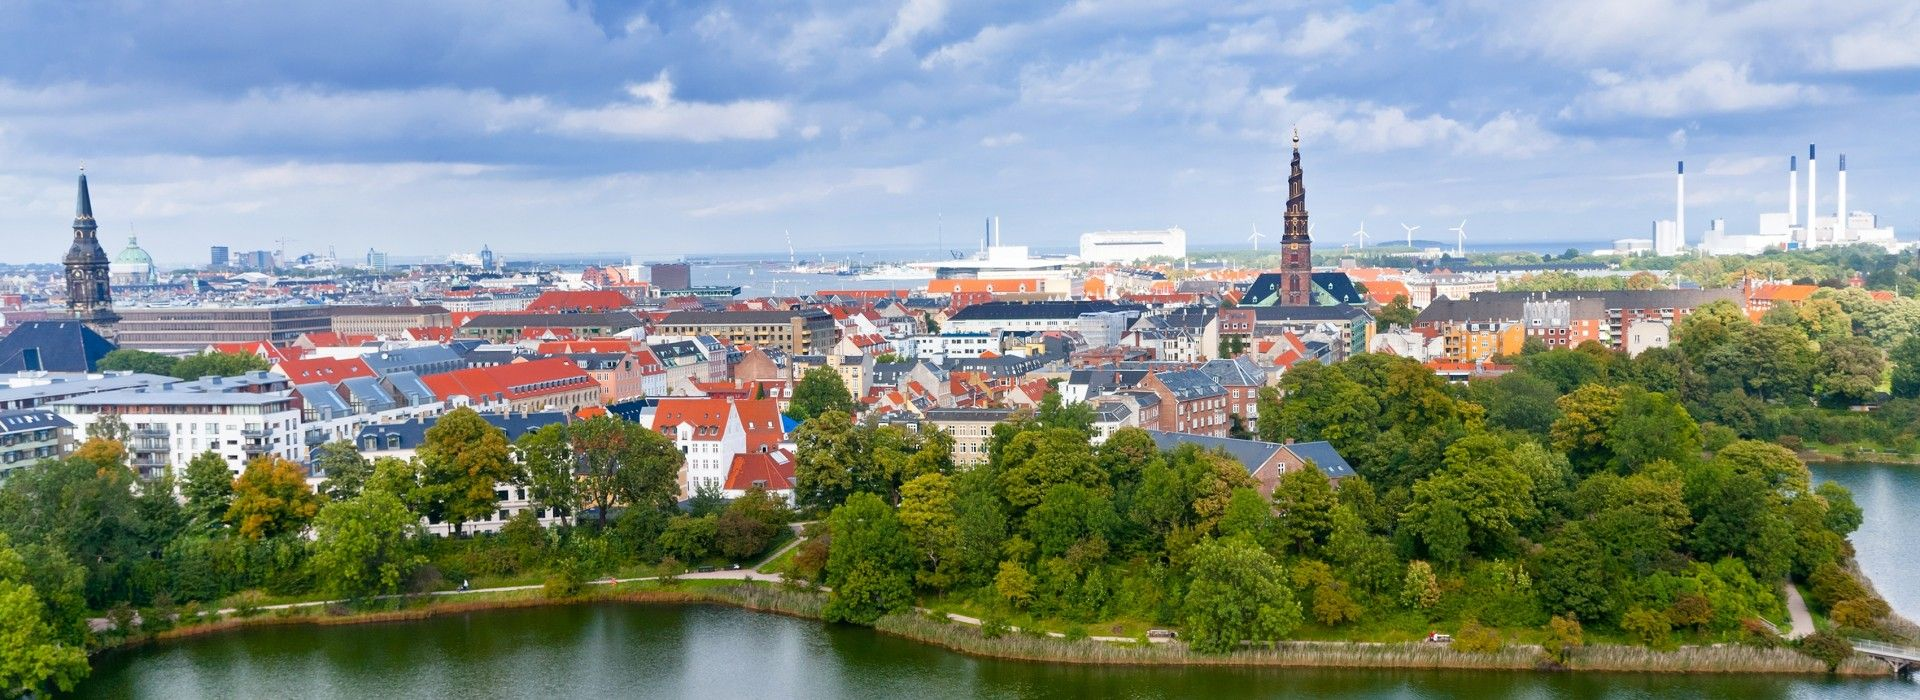 Cruise Tours in Europe